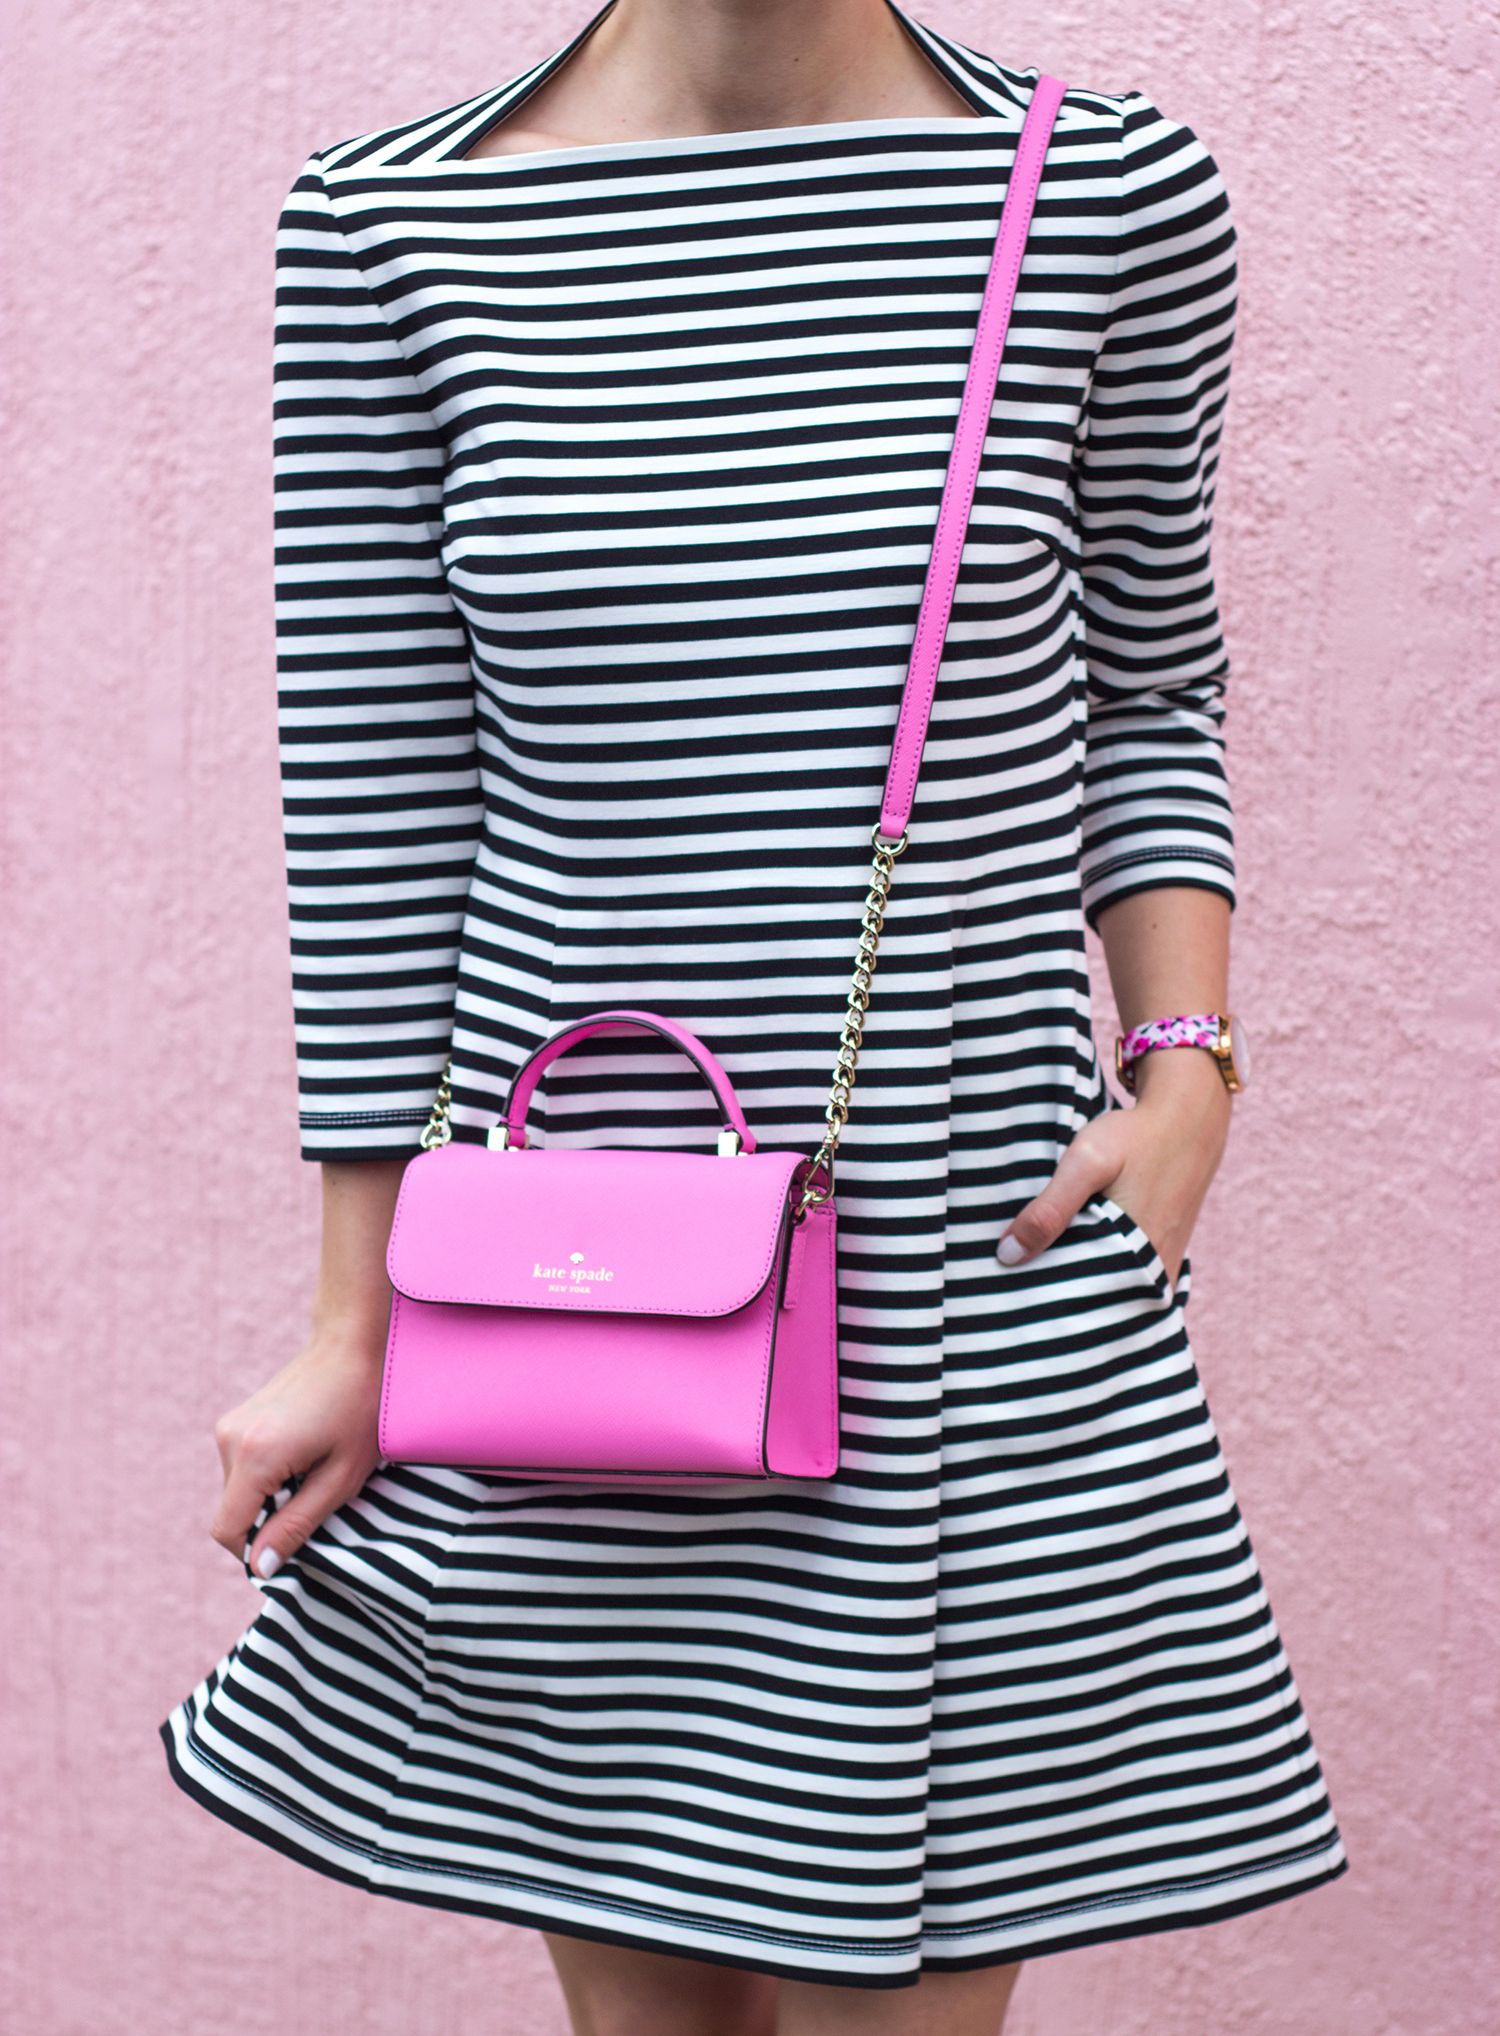 Livvyland X Kate Spade New York Everyday Dress In Stripes With A Rouge Pink Handbag